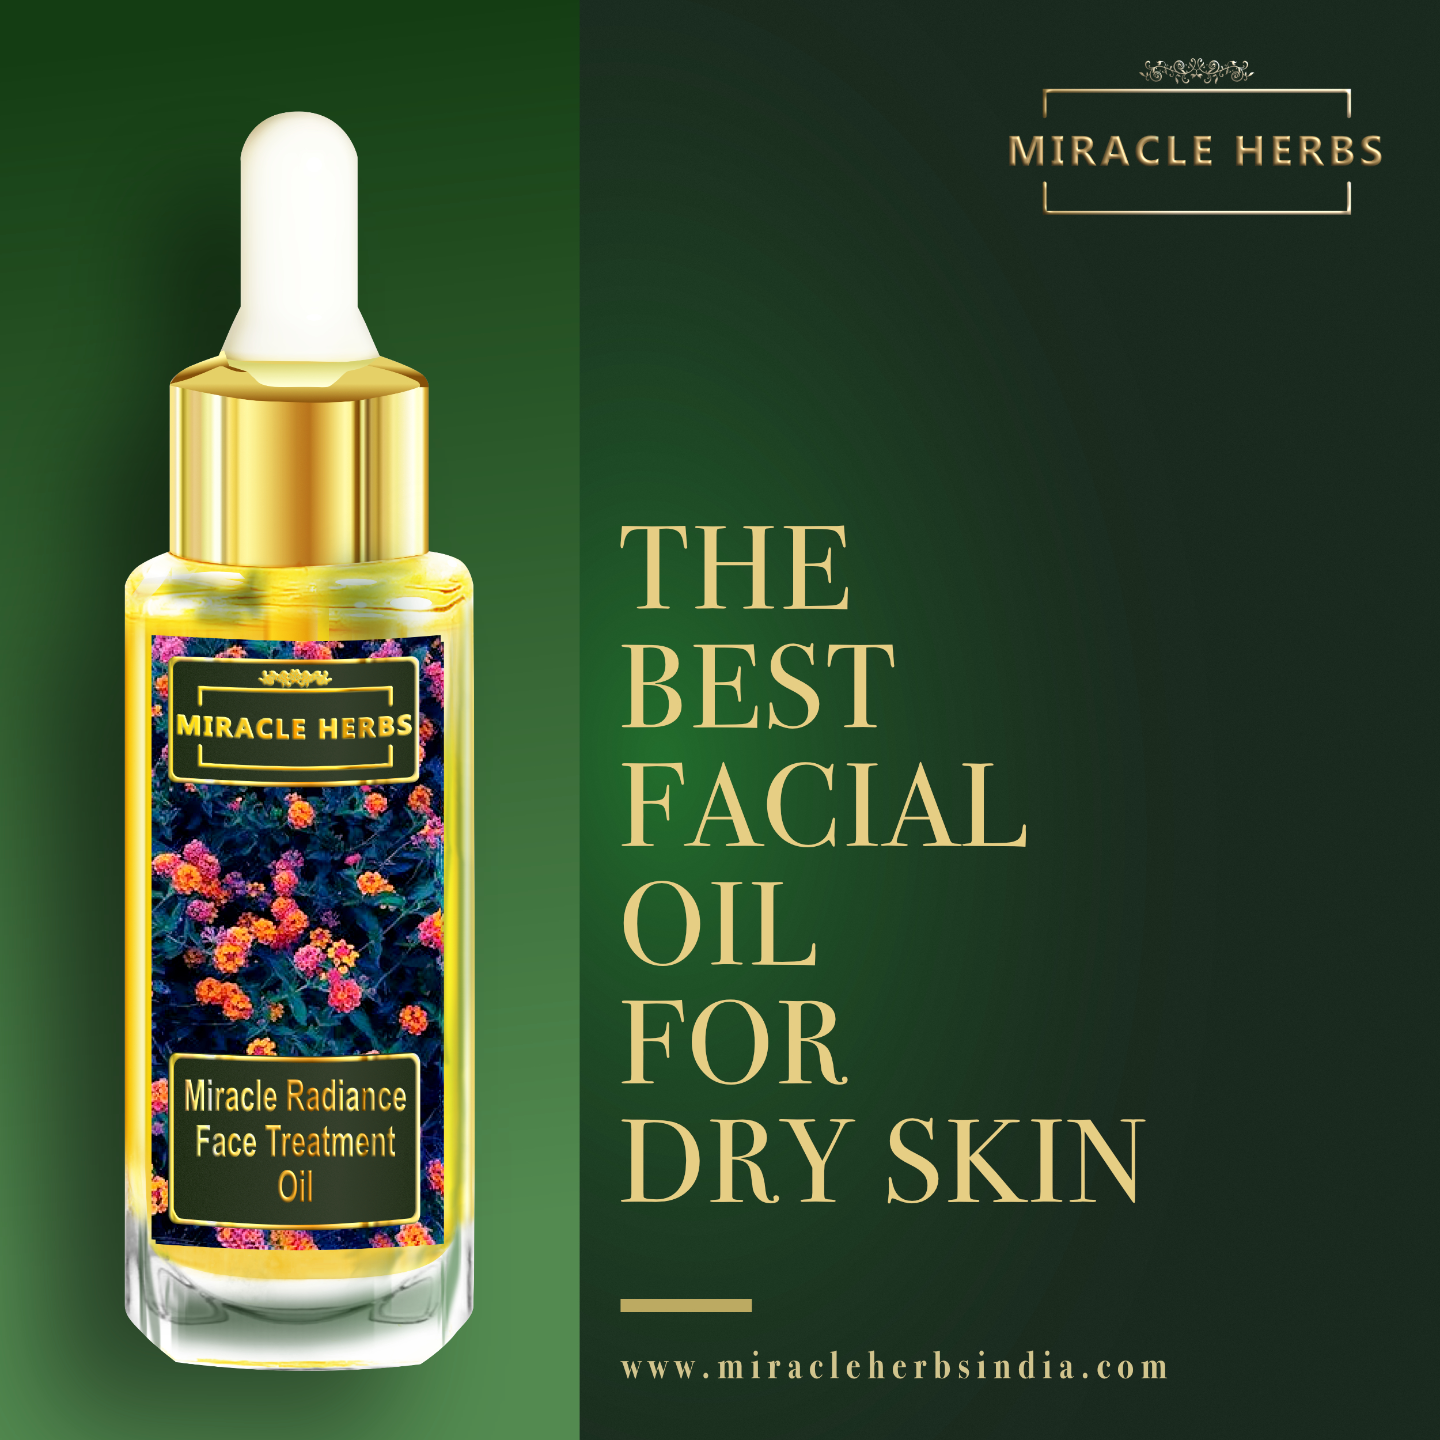 Miracle Herbs Radiance Face Treatment Oil Multivitamin Complex 100% Pure Plant Extracts For All Skin Type,30 ml, Skin Brightening.